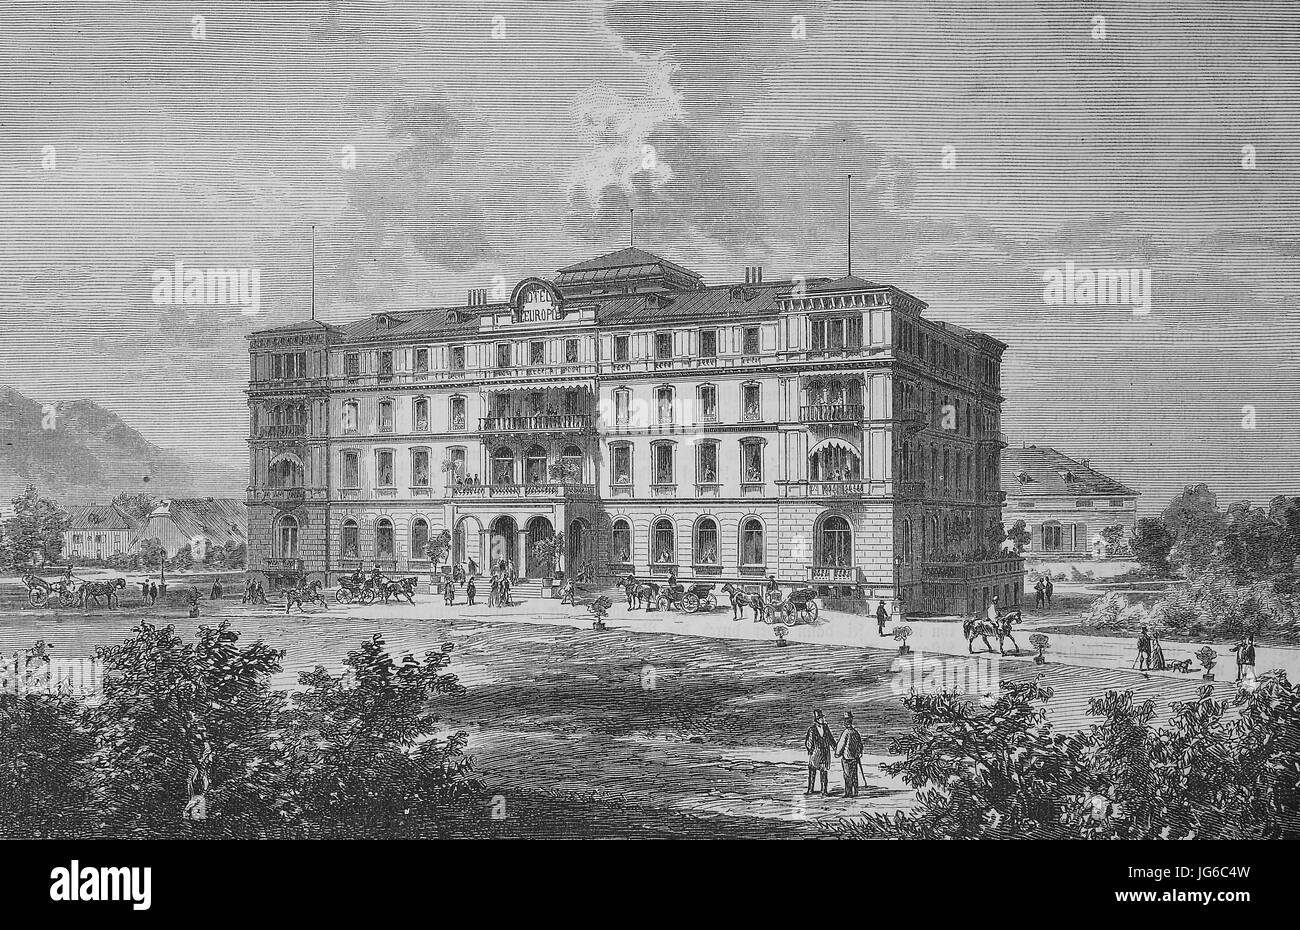 Digital improved:, building of the hotel Europa at Salzburg, Austria, illustration from the 19th century Stock Photo